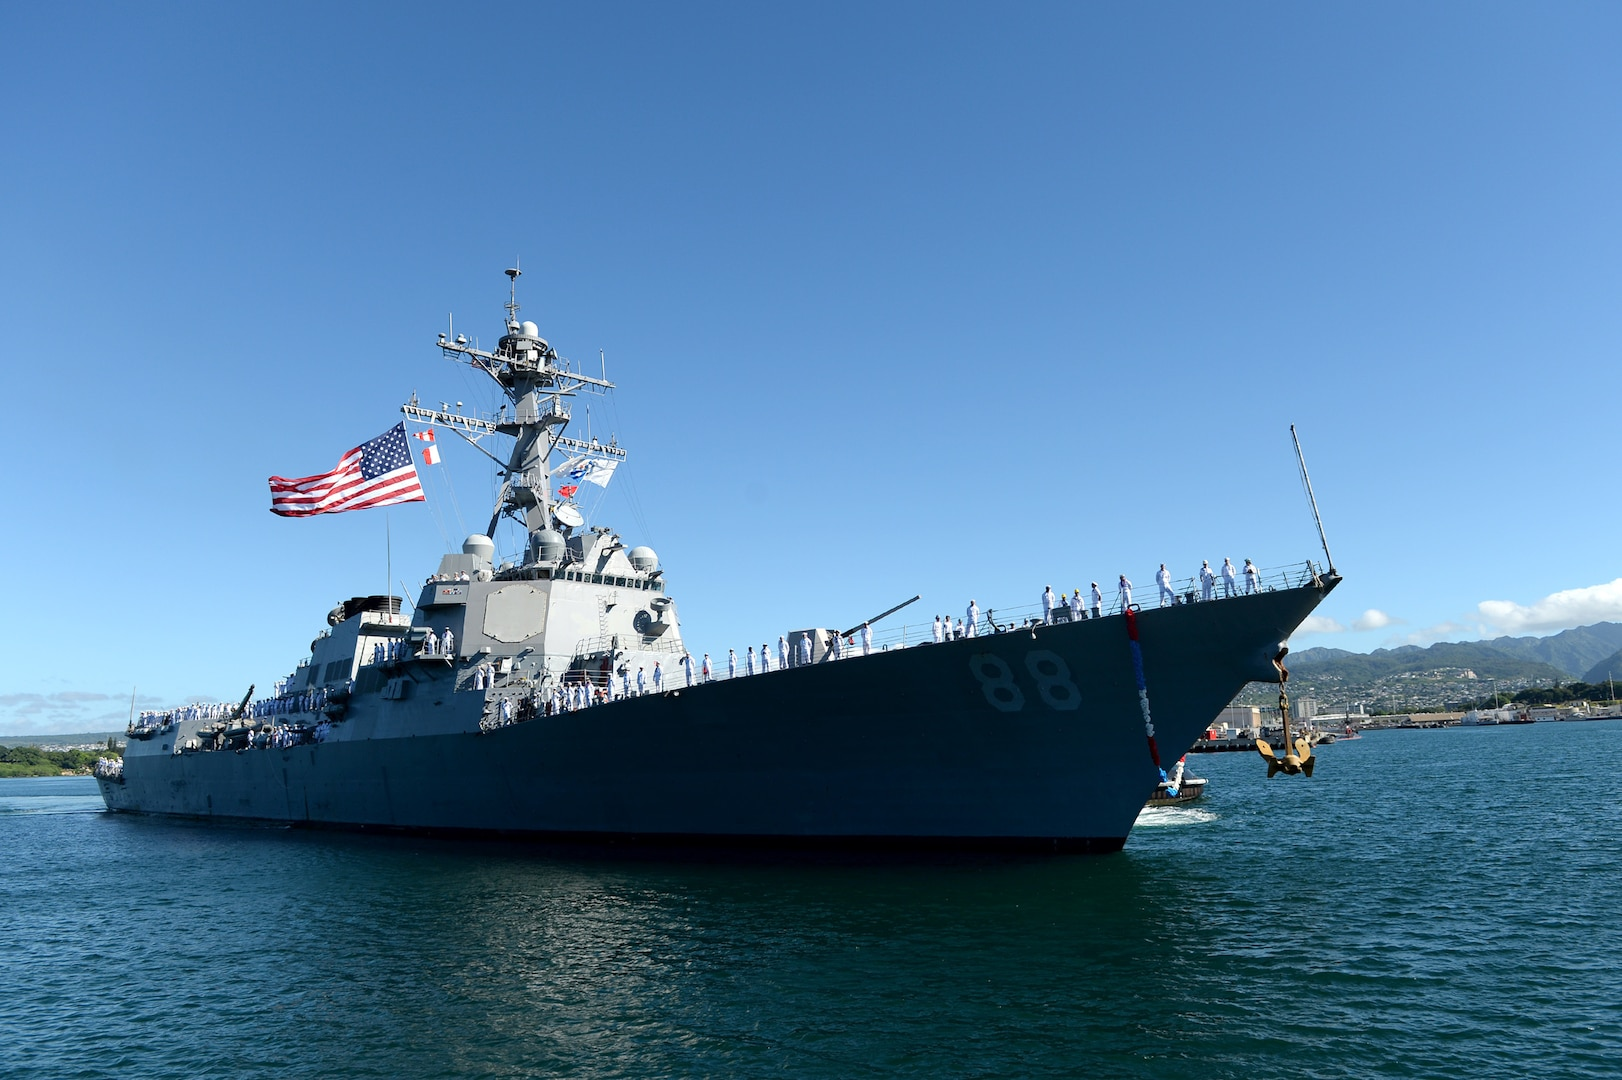 In this photo, the guided-missile destroyer USS Preble (DDG 88) prepares to moor at Joint Base Pearl Harbor-Hickam following an independent deployment to the Western Pacific. Deployed since March, the crew of more than 300 Sailors steamed a total of 48,550 nautical miles across the U.S. 3rd and 7th Fleet areas of operation. While deployed Preble conducted various theater security operations and goodwill activities with partner nations.